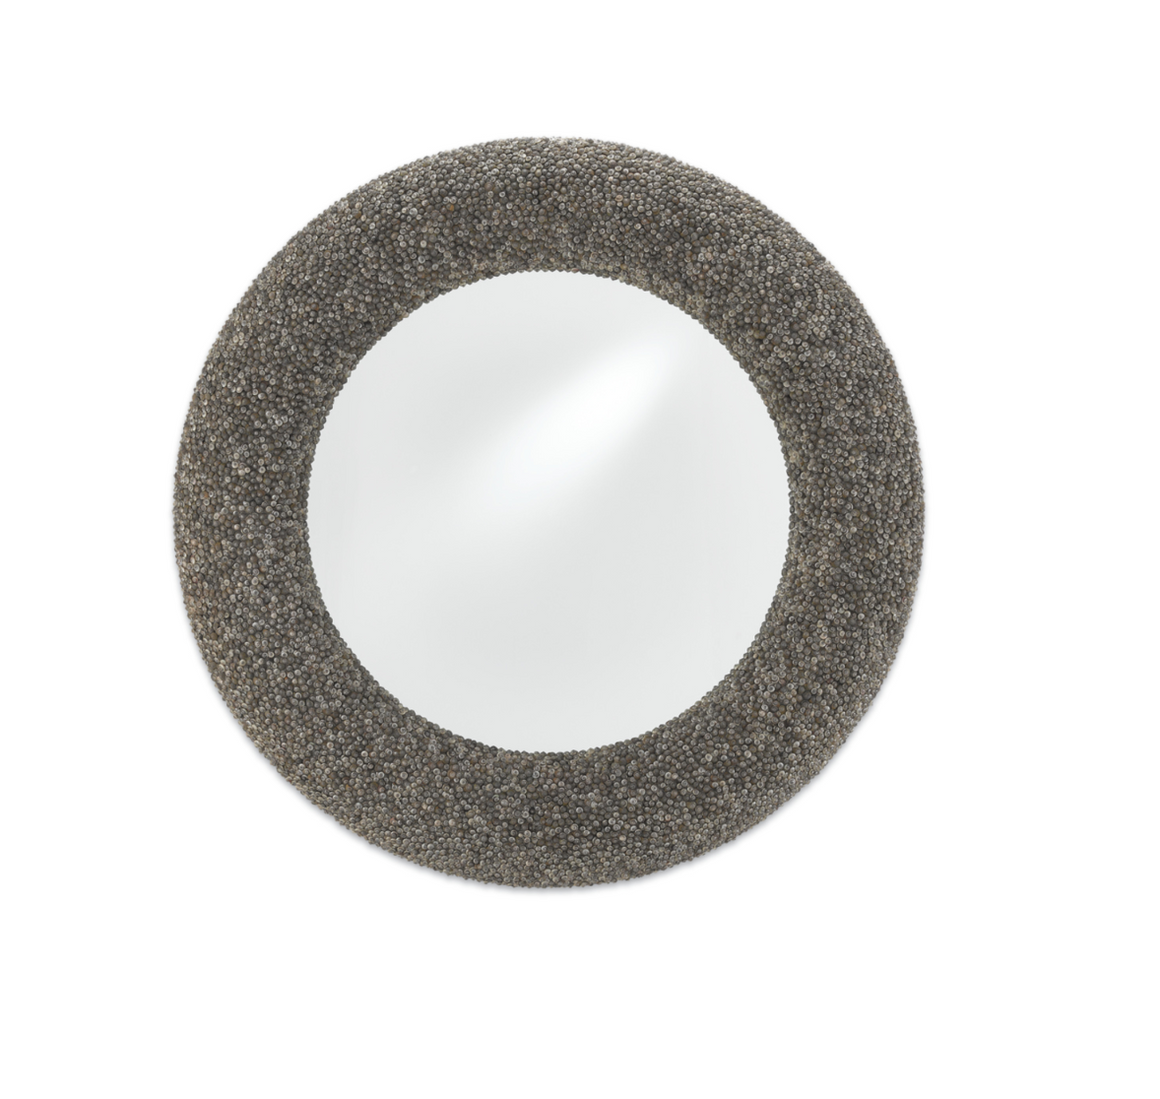 Batad Round Shell Mirror by Currey and Company